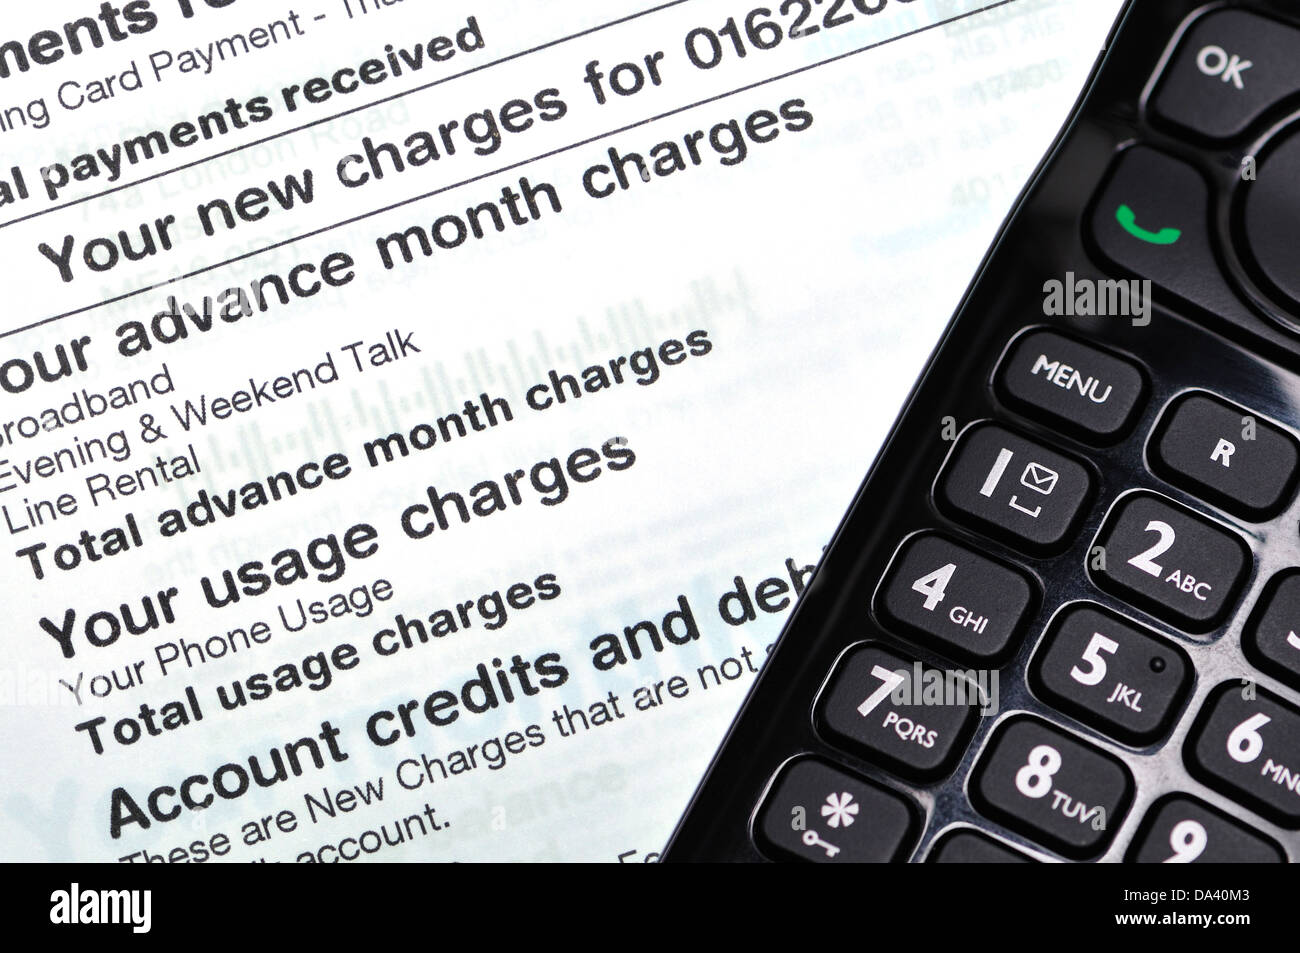 Monthly telephone bill with handset - Stock Image